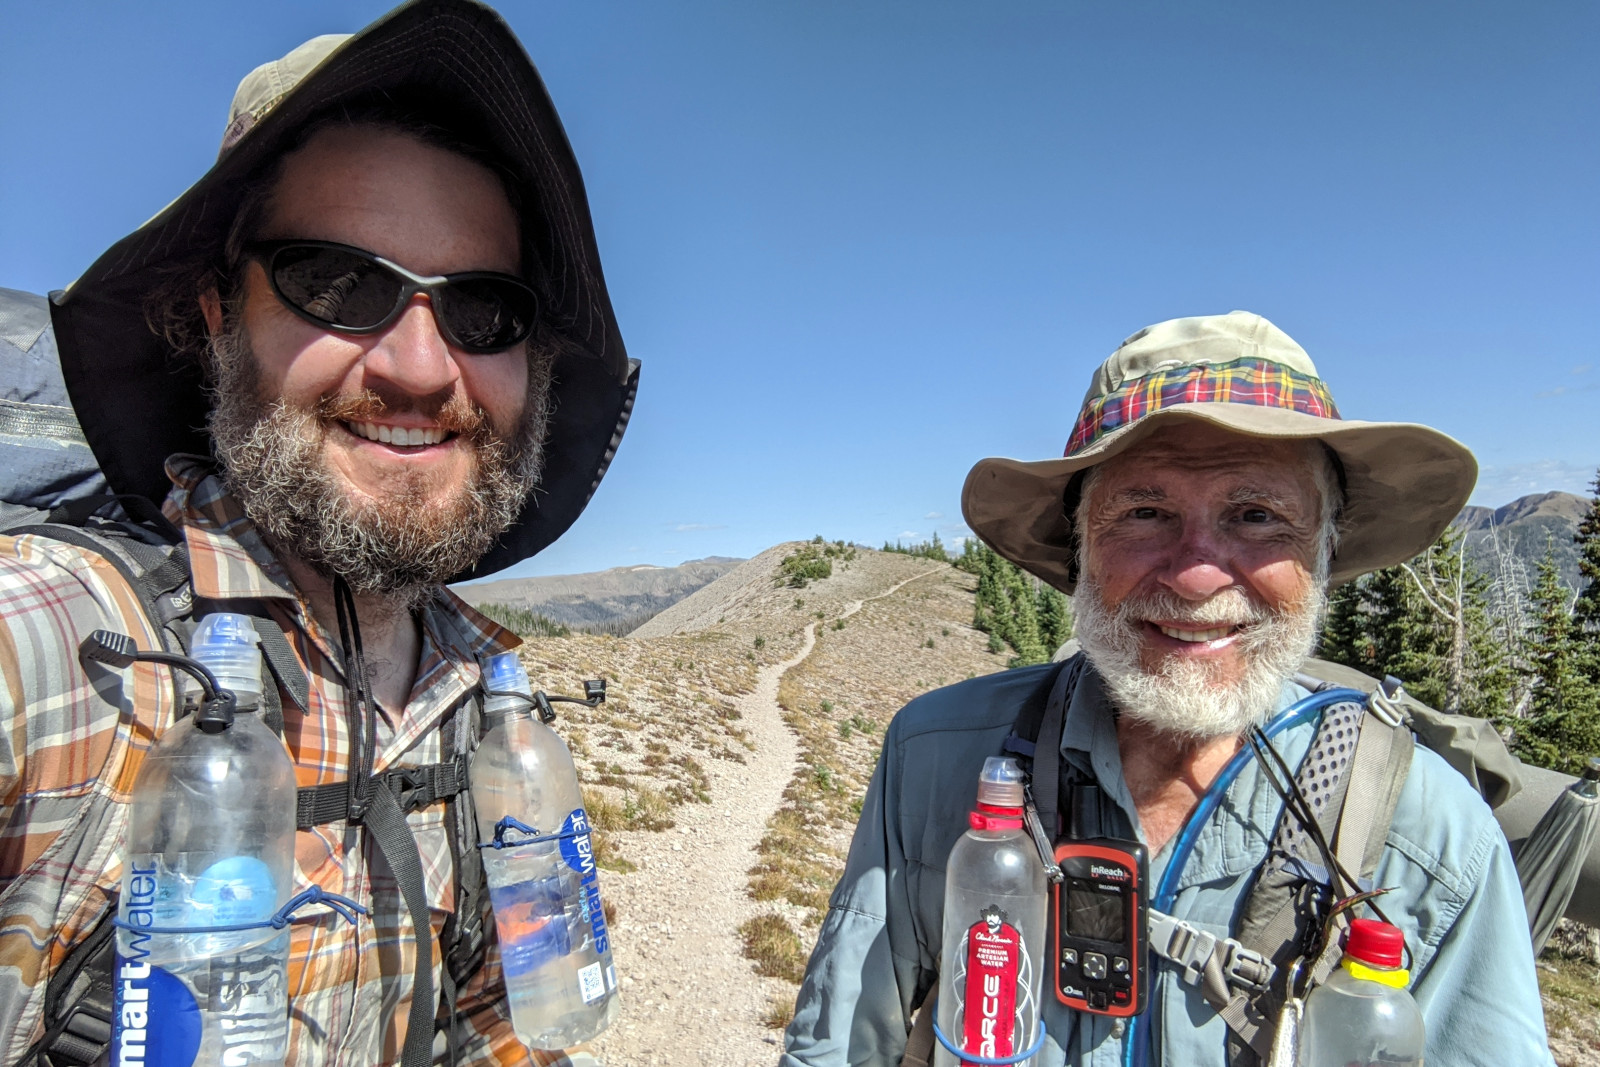 Justin and Dad (aka Tartan) after meeting up on the trail in the Weminuche Wilderness